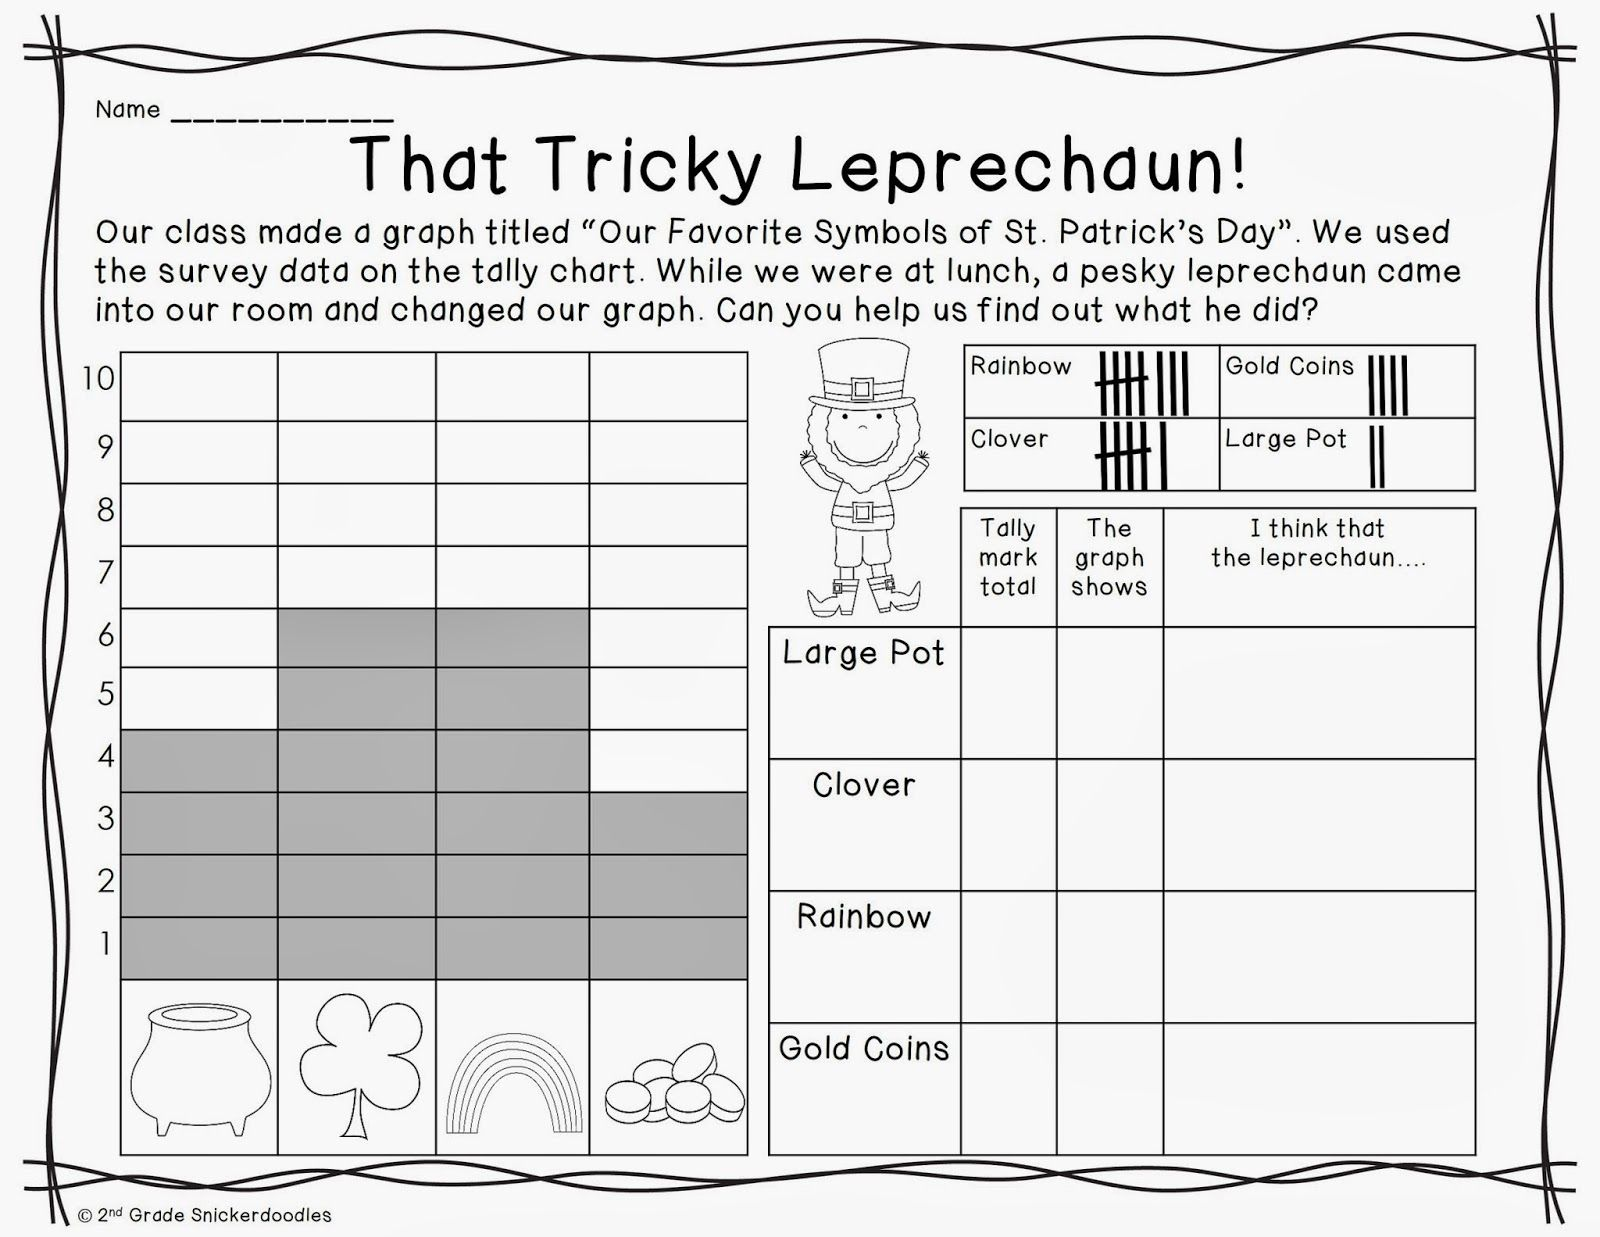 hight resolution of FREE graphing activities by 2nd Grade Snickerdoodles   Graphing activities